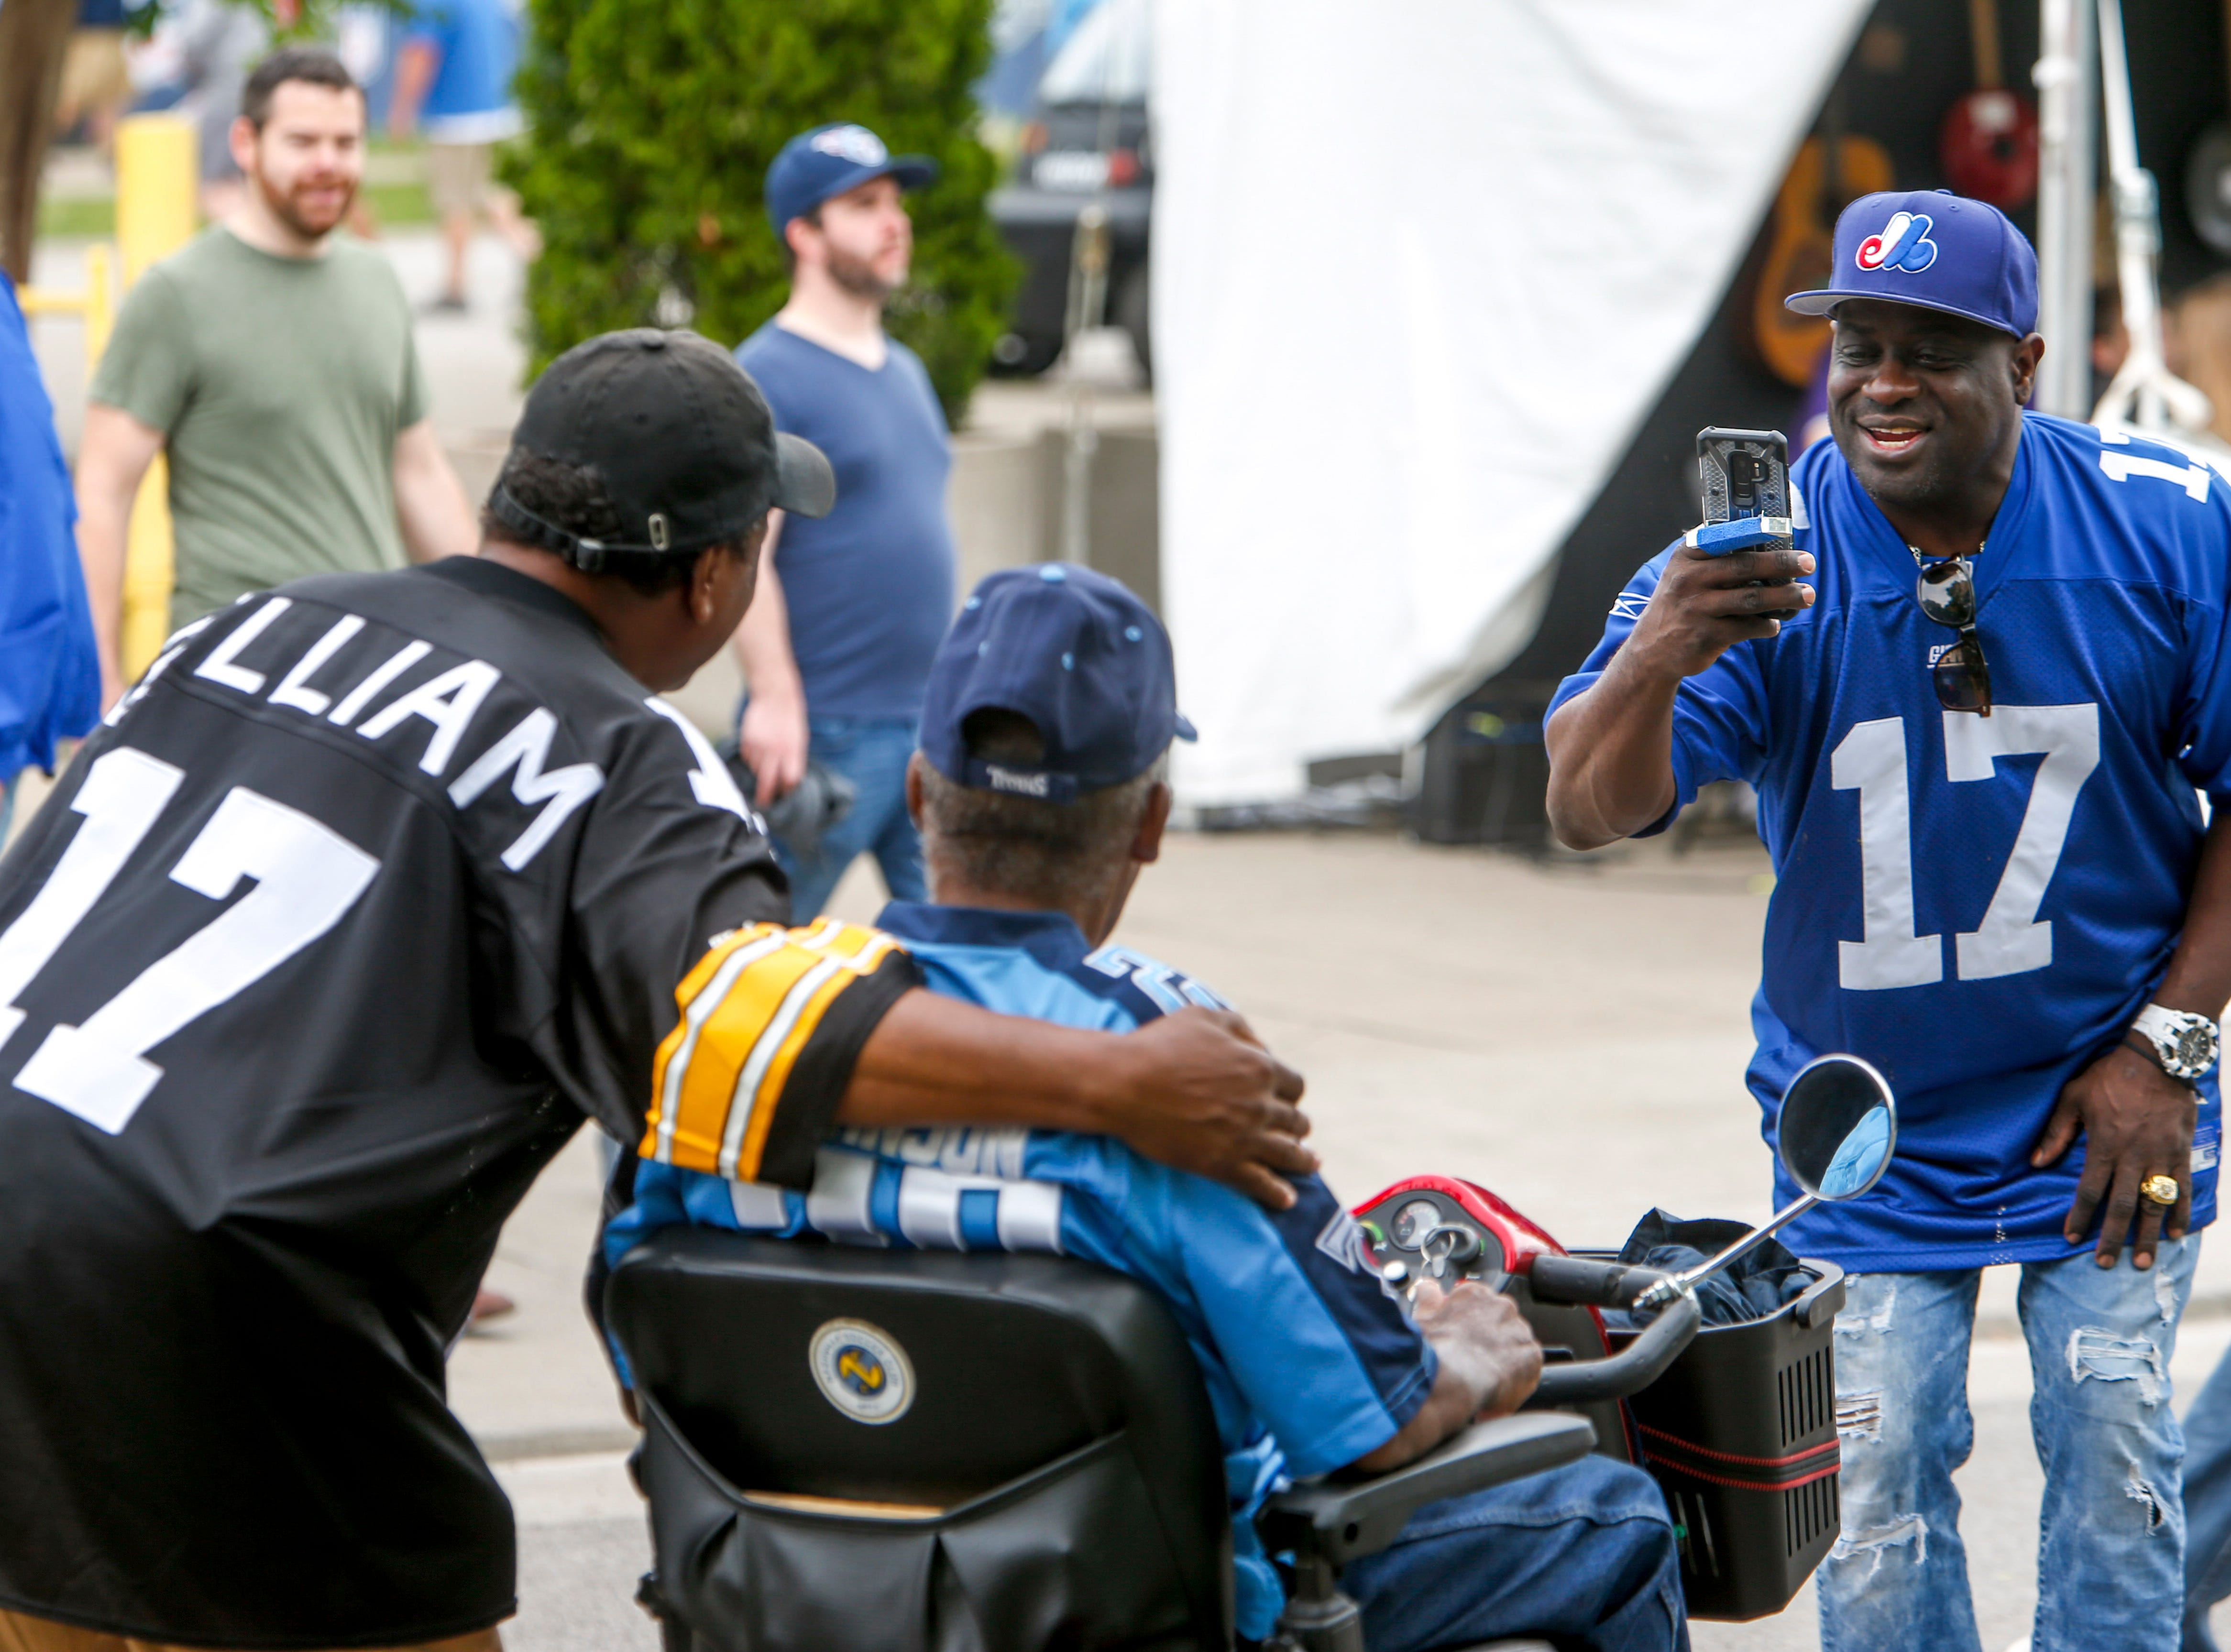 Fans take pictures with friends during the NFL Draft Experience at Nissan Stadium in Nashville, Tenn., on Thursday, April 25, 2019.